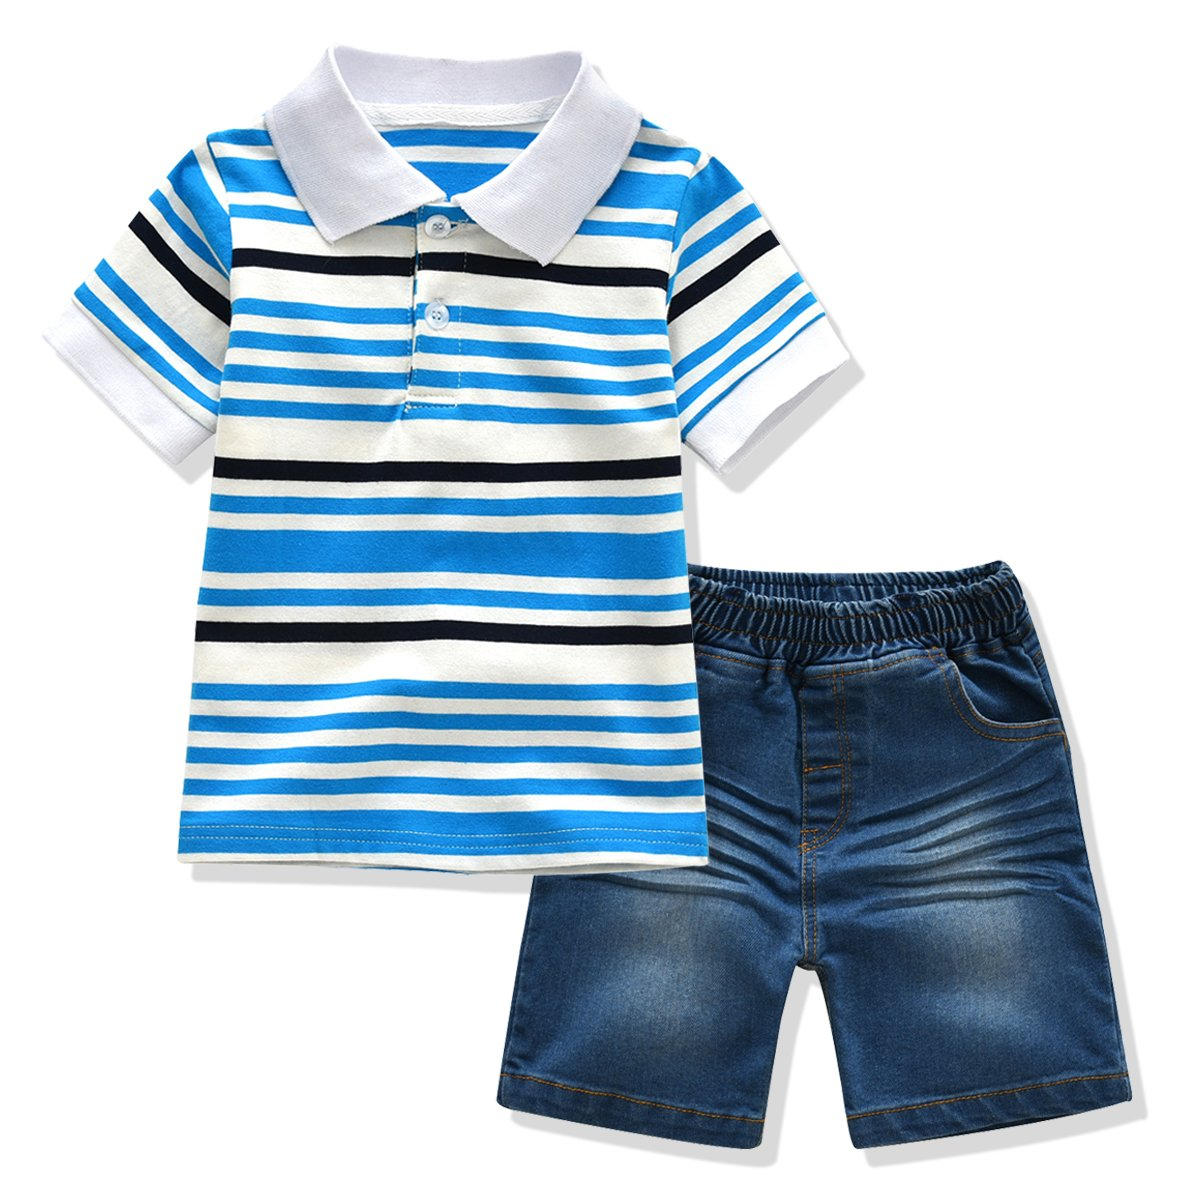 Ferenyi Toddler Boys Clothing Boys' Solid Pique Polo Shirt and Denim Shorts Sets (3 years, Blue 3)